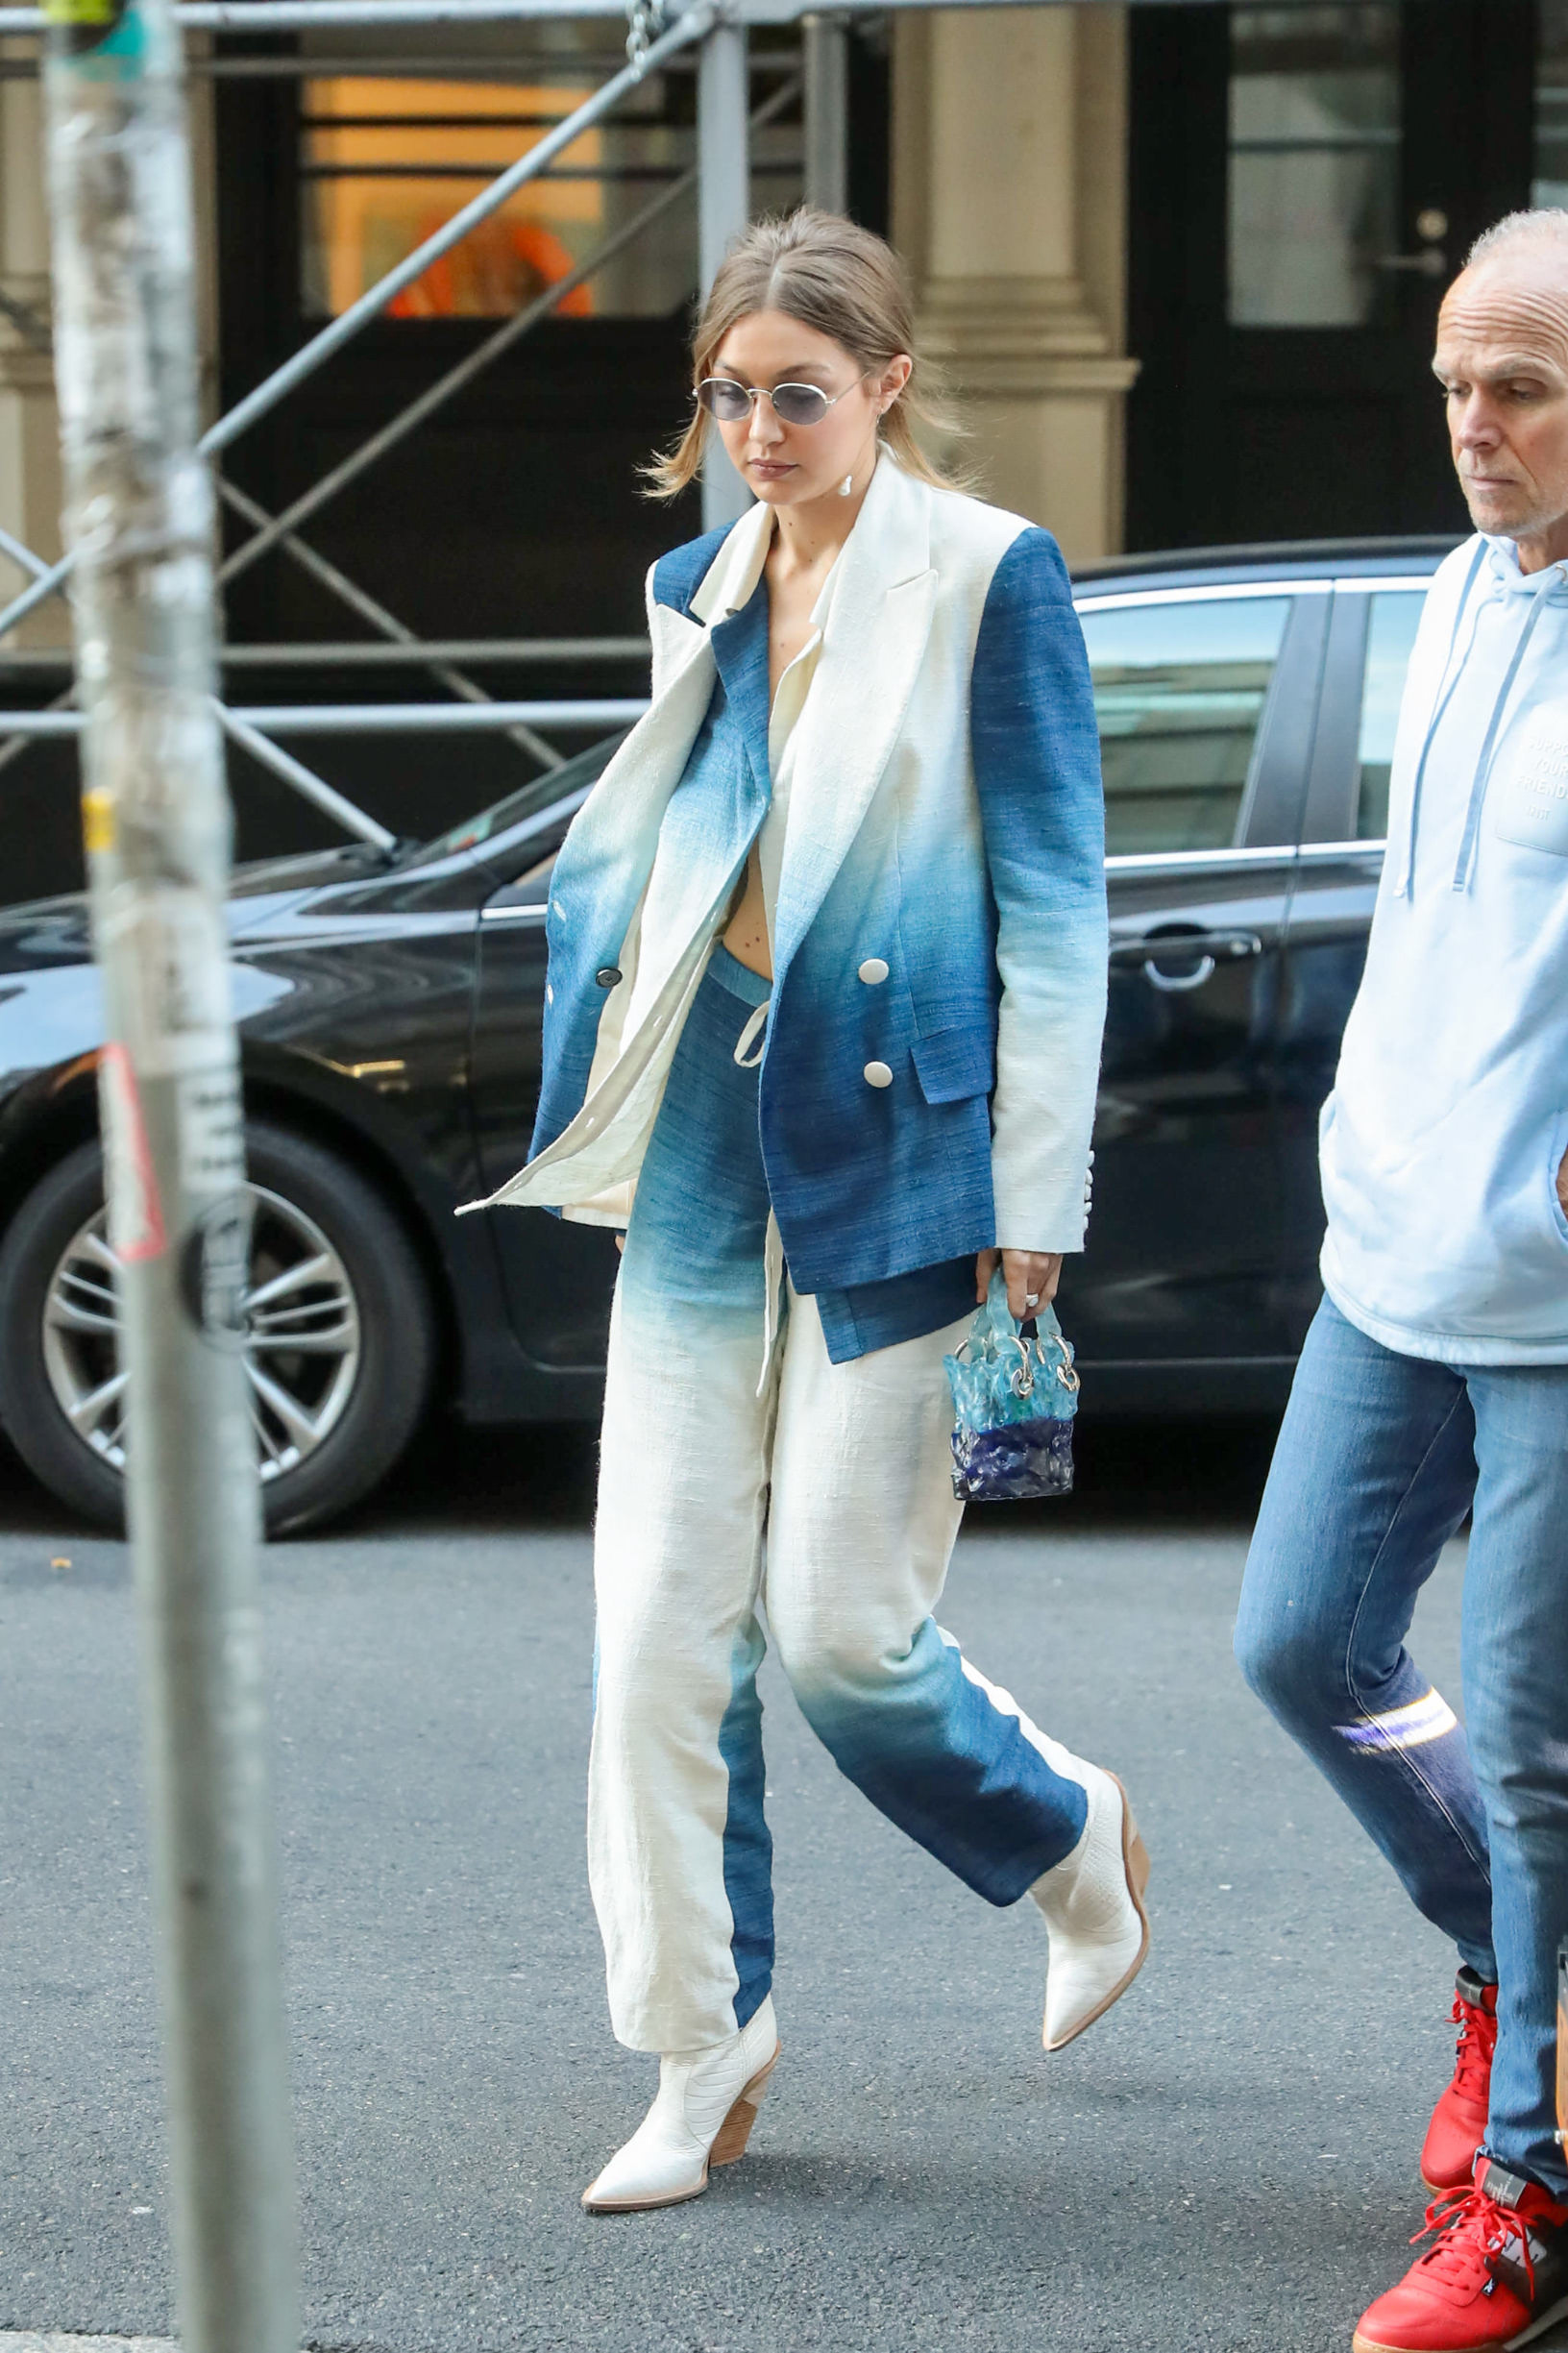 Gigi Hadid is seen in New York City. 19 Oct 2019, Image: 477904789, License: Rights-managed, Restrictions: World Rights, Model Release: no, Credit line: BG024/Bauergriffin.com / MEGA / Mega Agency / Profimedia